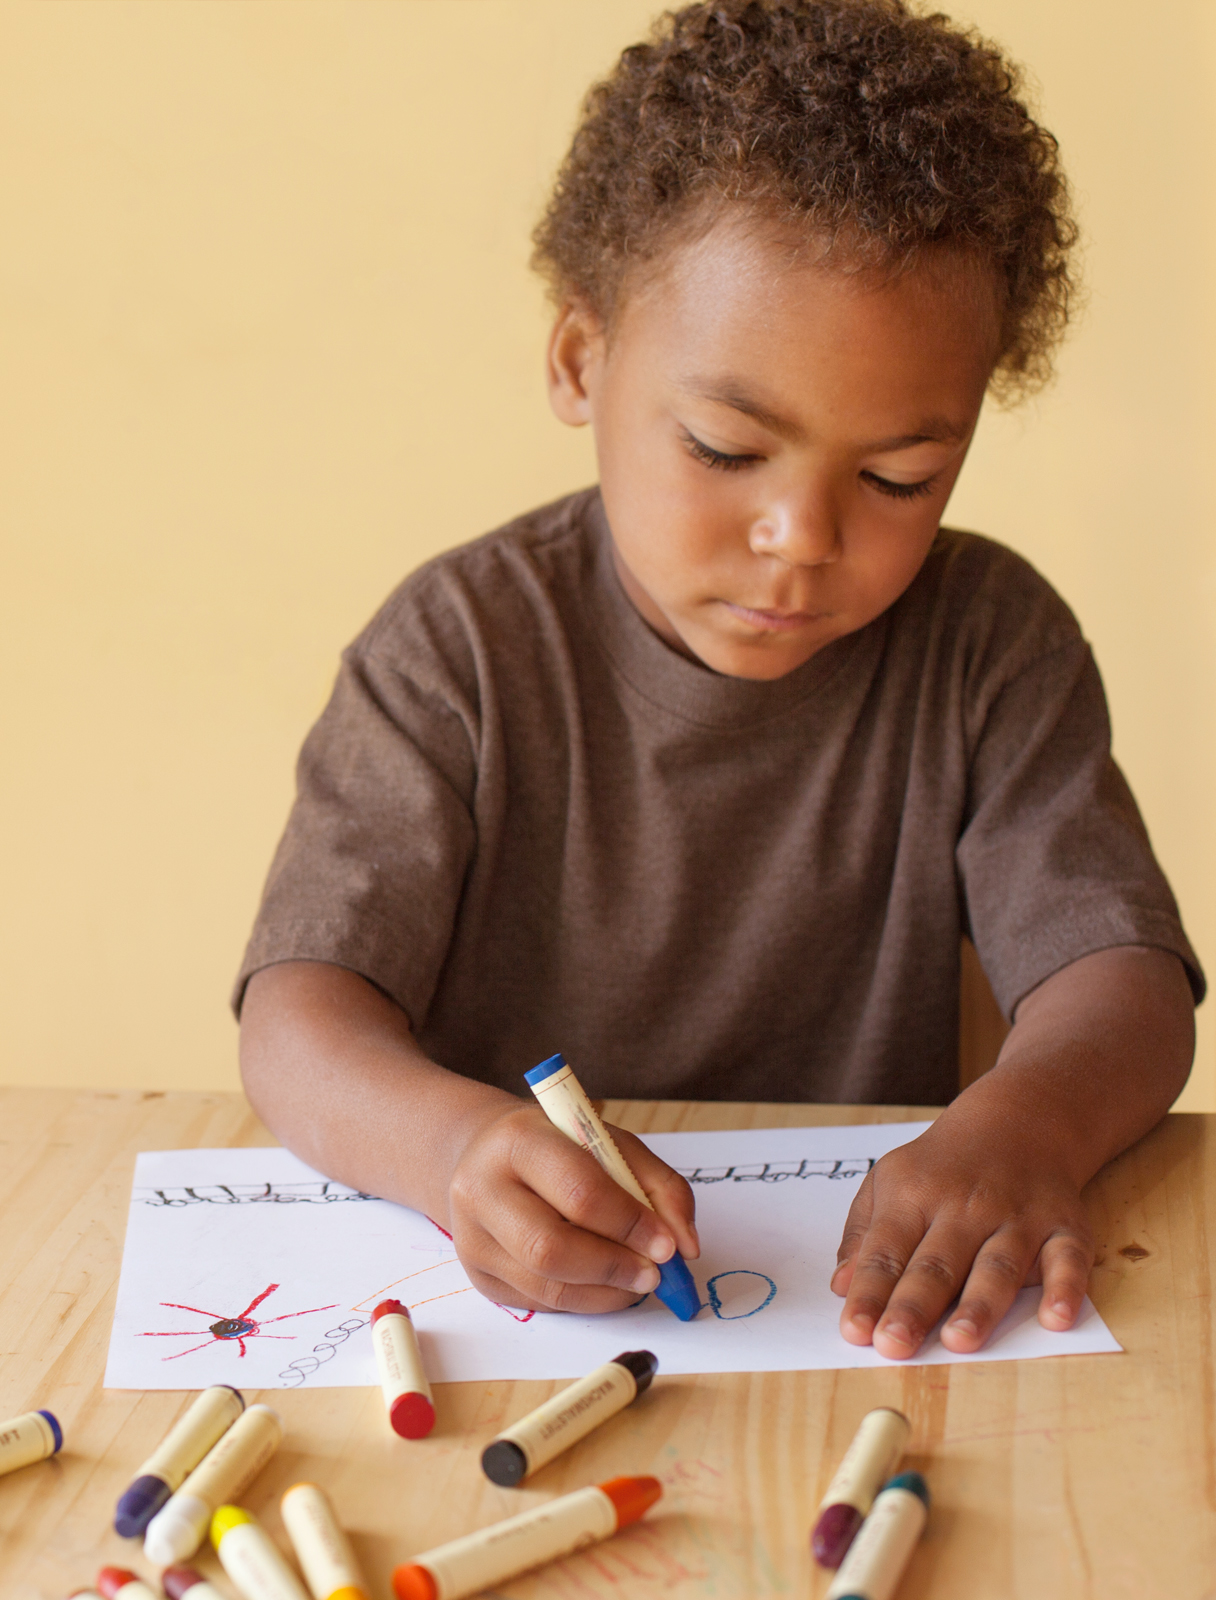 The 7 Domains Of Early Childhood Development